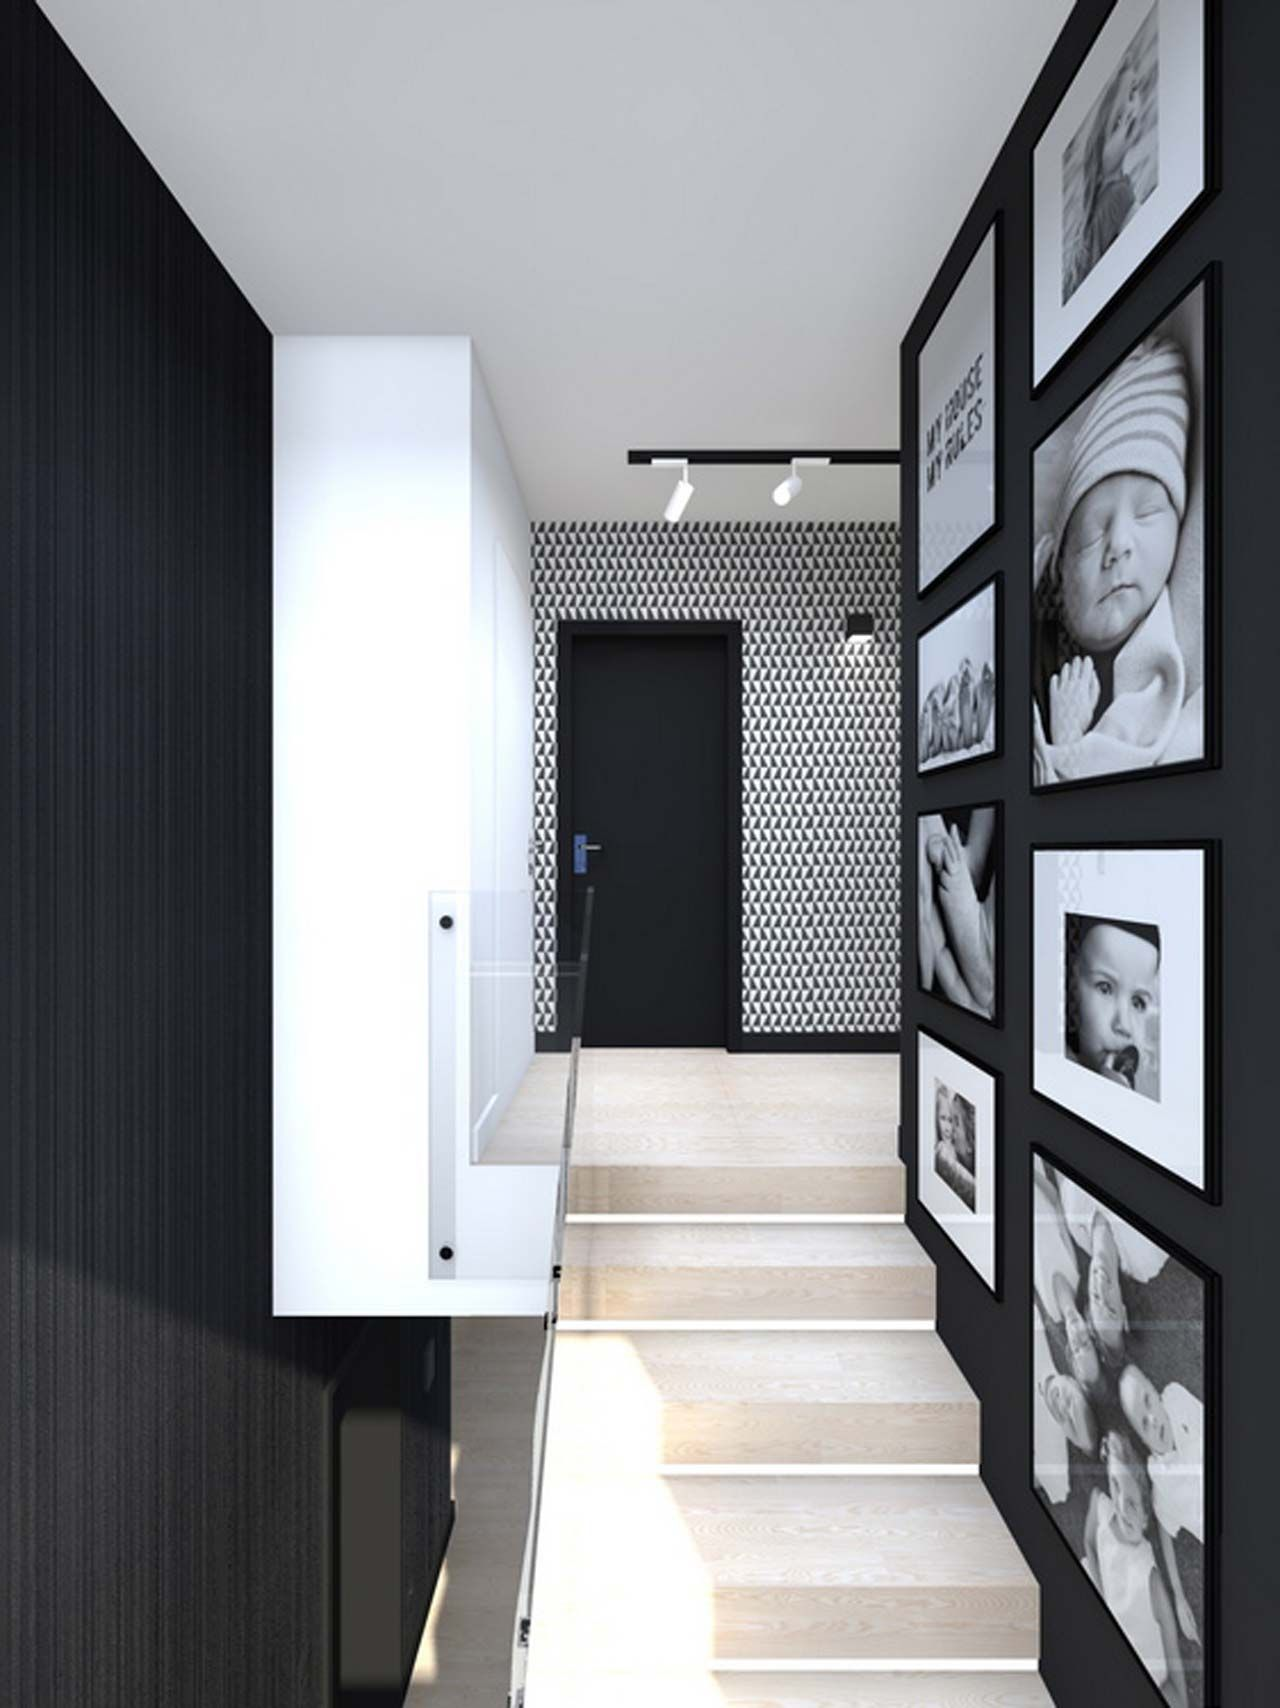 Best Interior Home Design Wall Design ~ http://www.lookmyhomes.com/awesome-home-interior-design-ideas-32-photos-by-tarnowskie-gory/